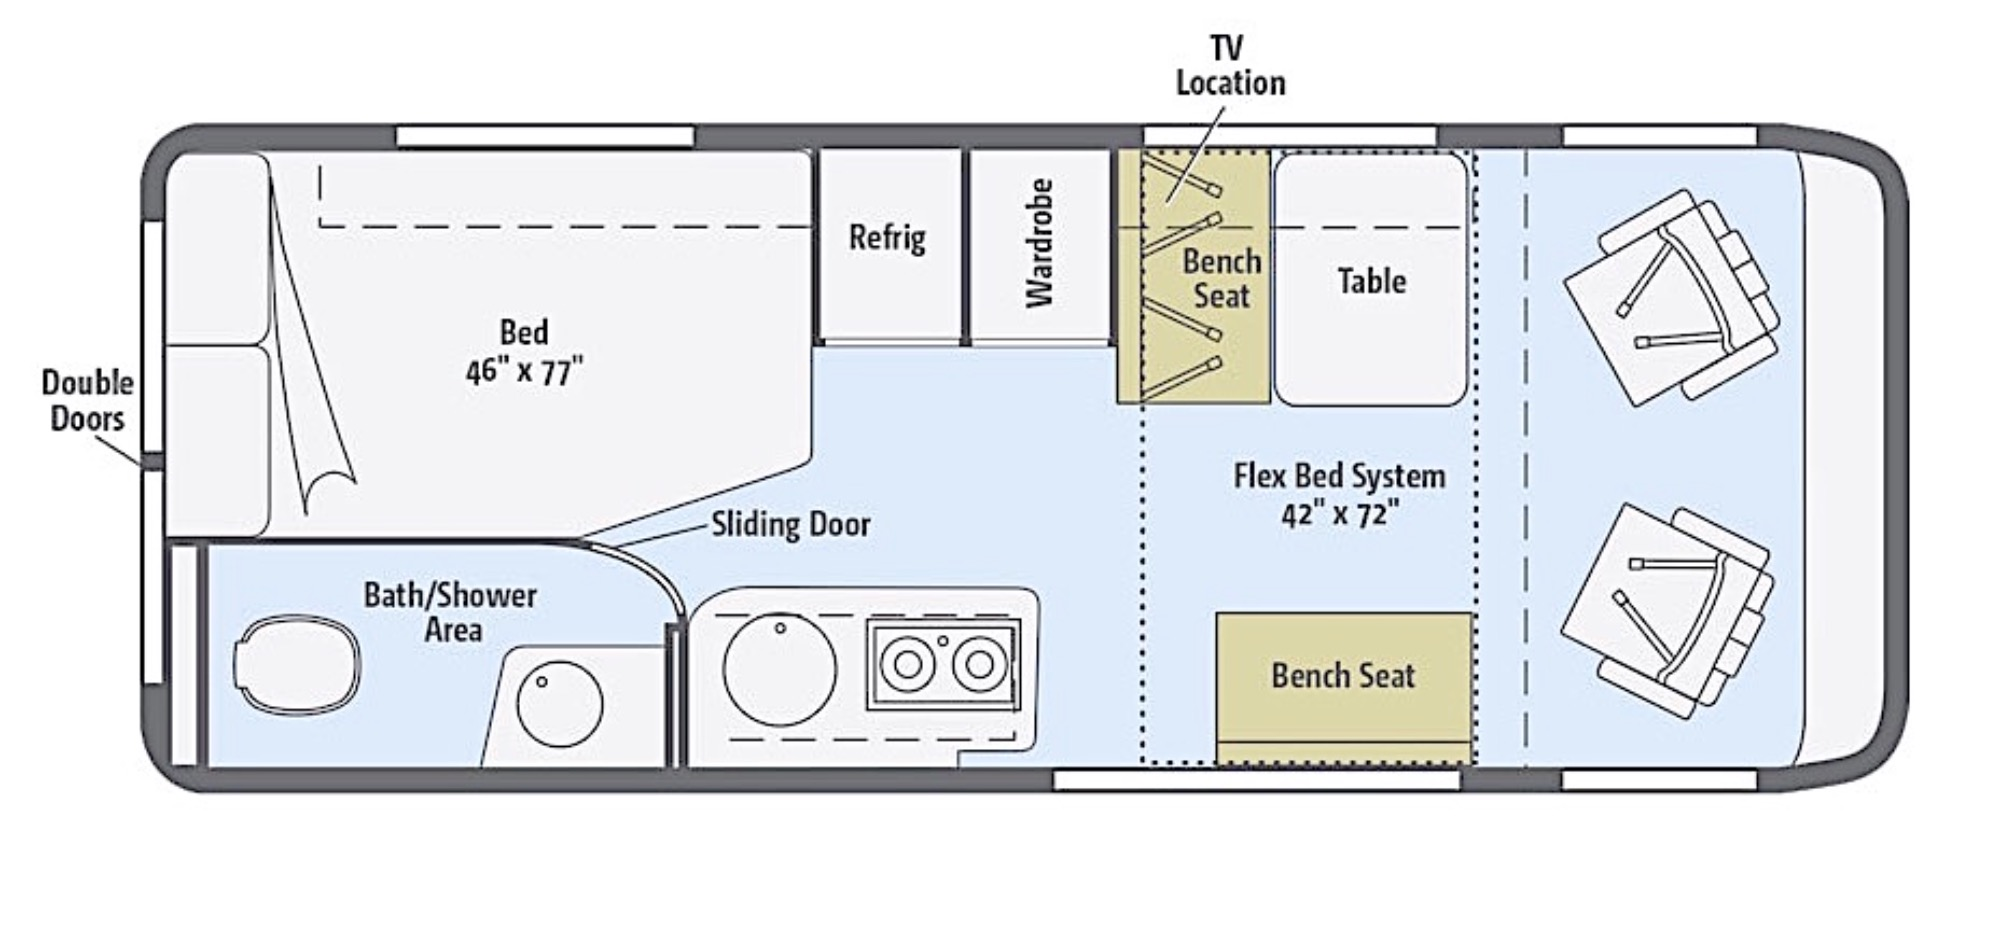 Class b rv floor plans images for Motorhome plans